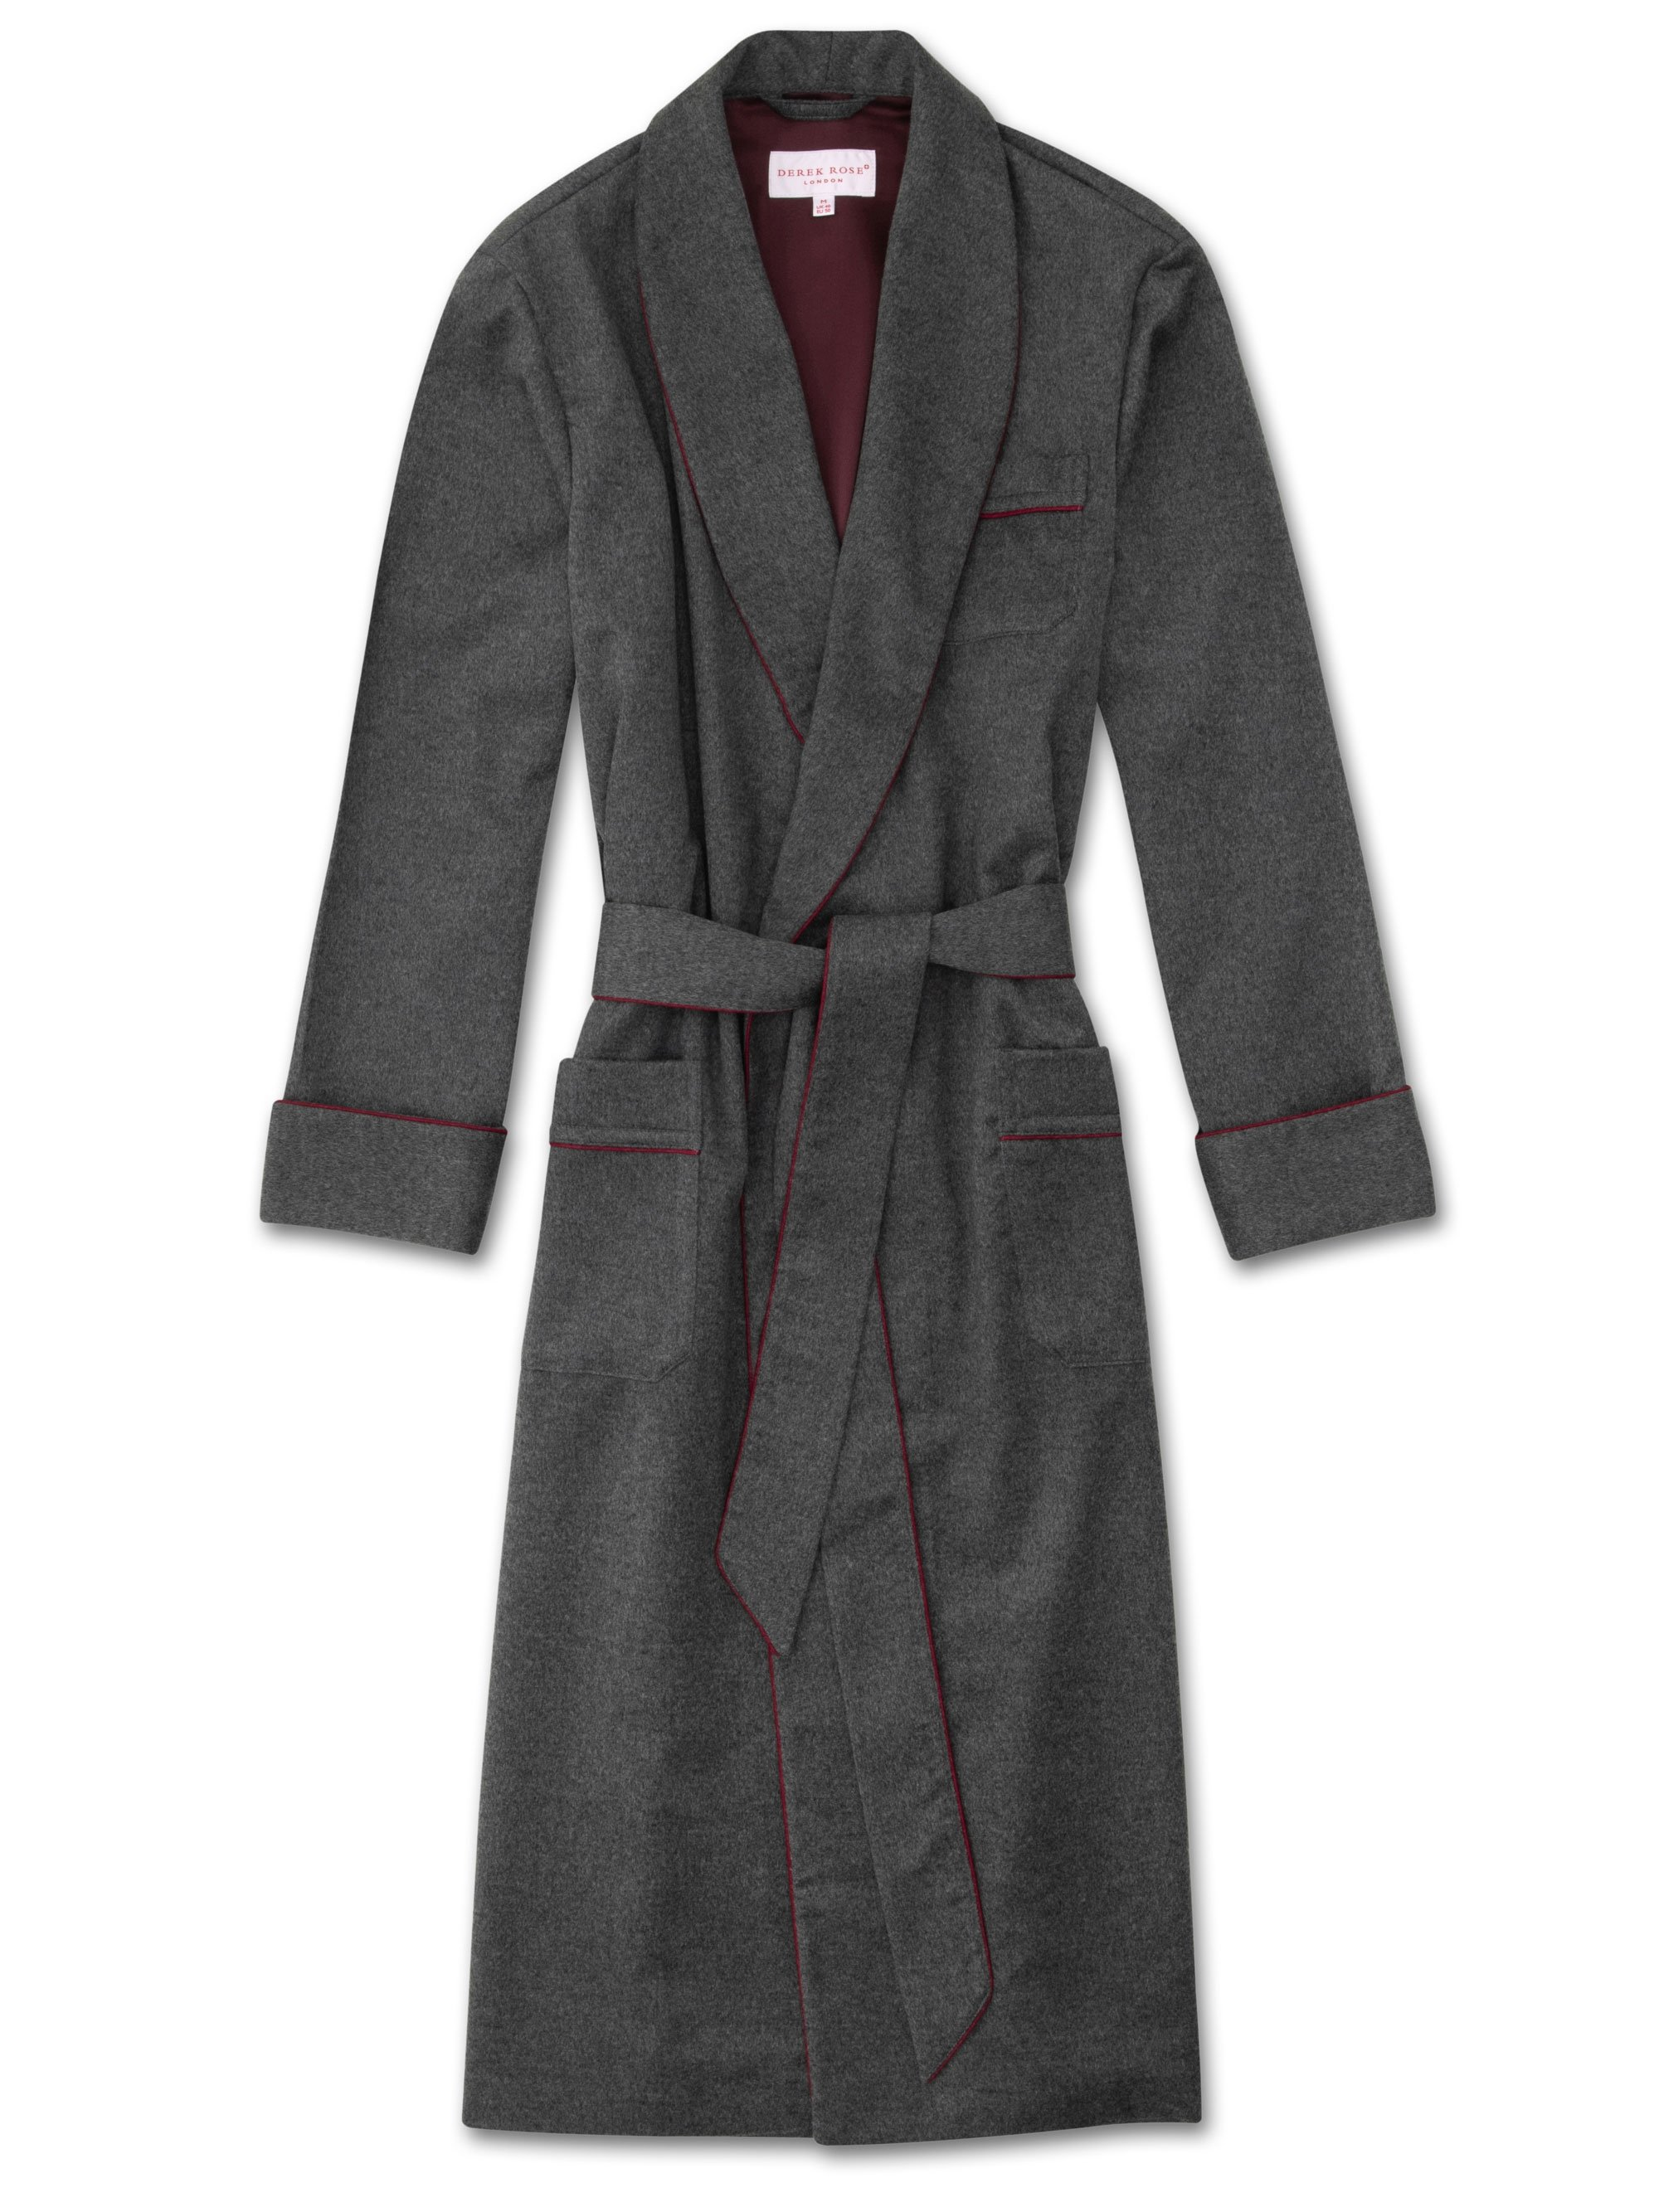 Men's Cashmere Dressing Gown Duke Pure Cashmere Charcoal